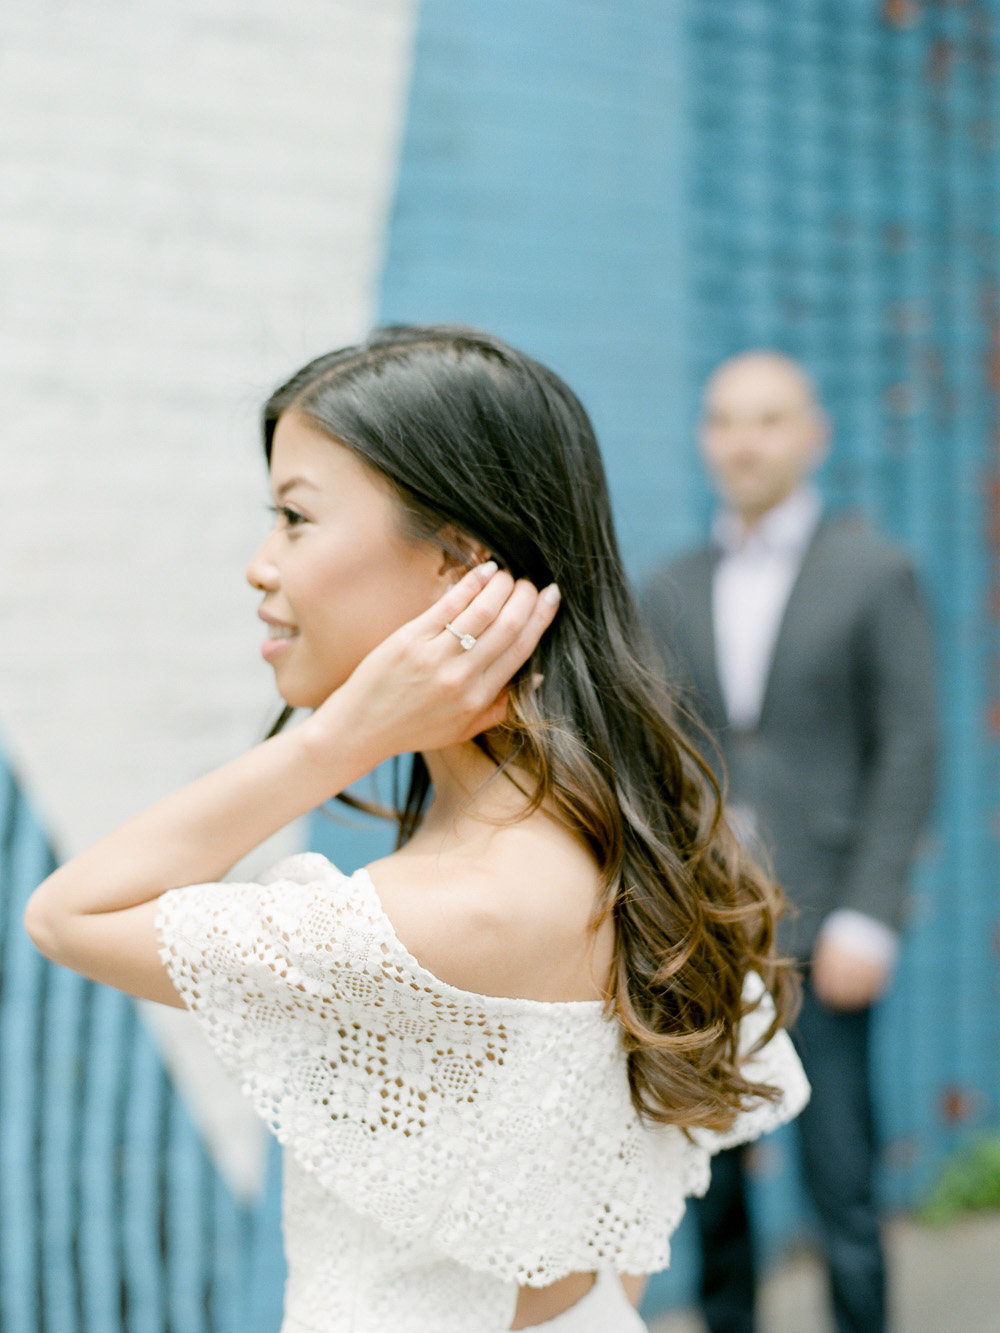 mary-dougherty-engagement-wedding-photographer-nyc-brooklyn-manhattan05